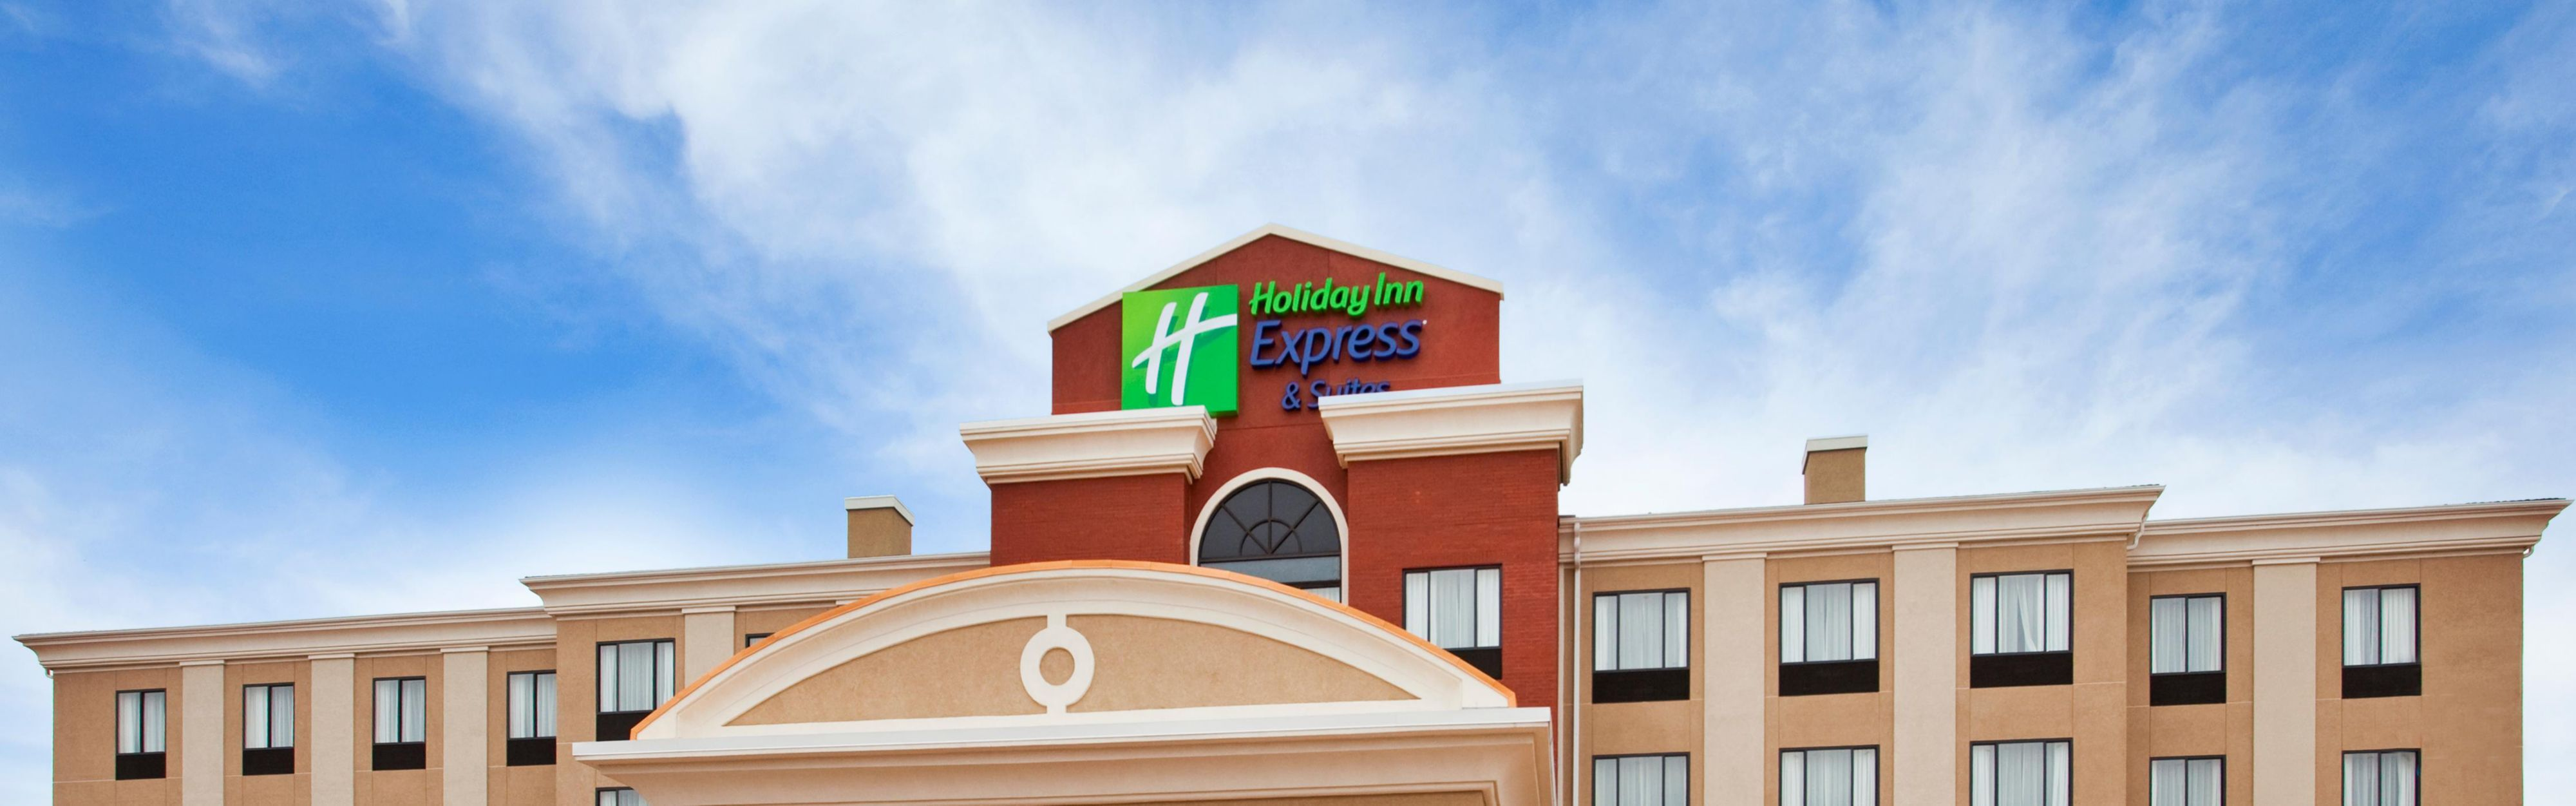 Holiday Inn Express & Suites Guthrie North Edmond image 0